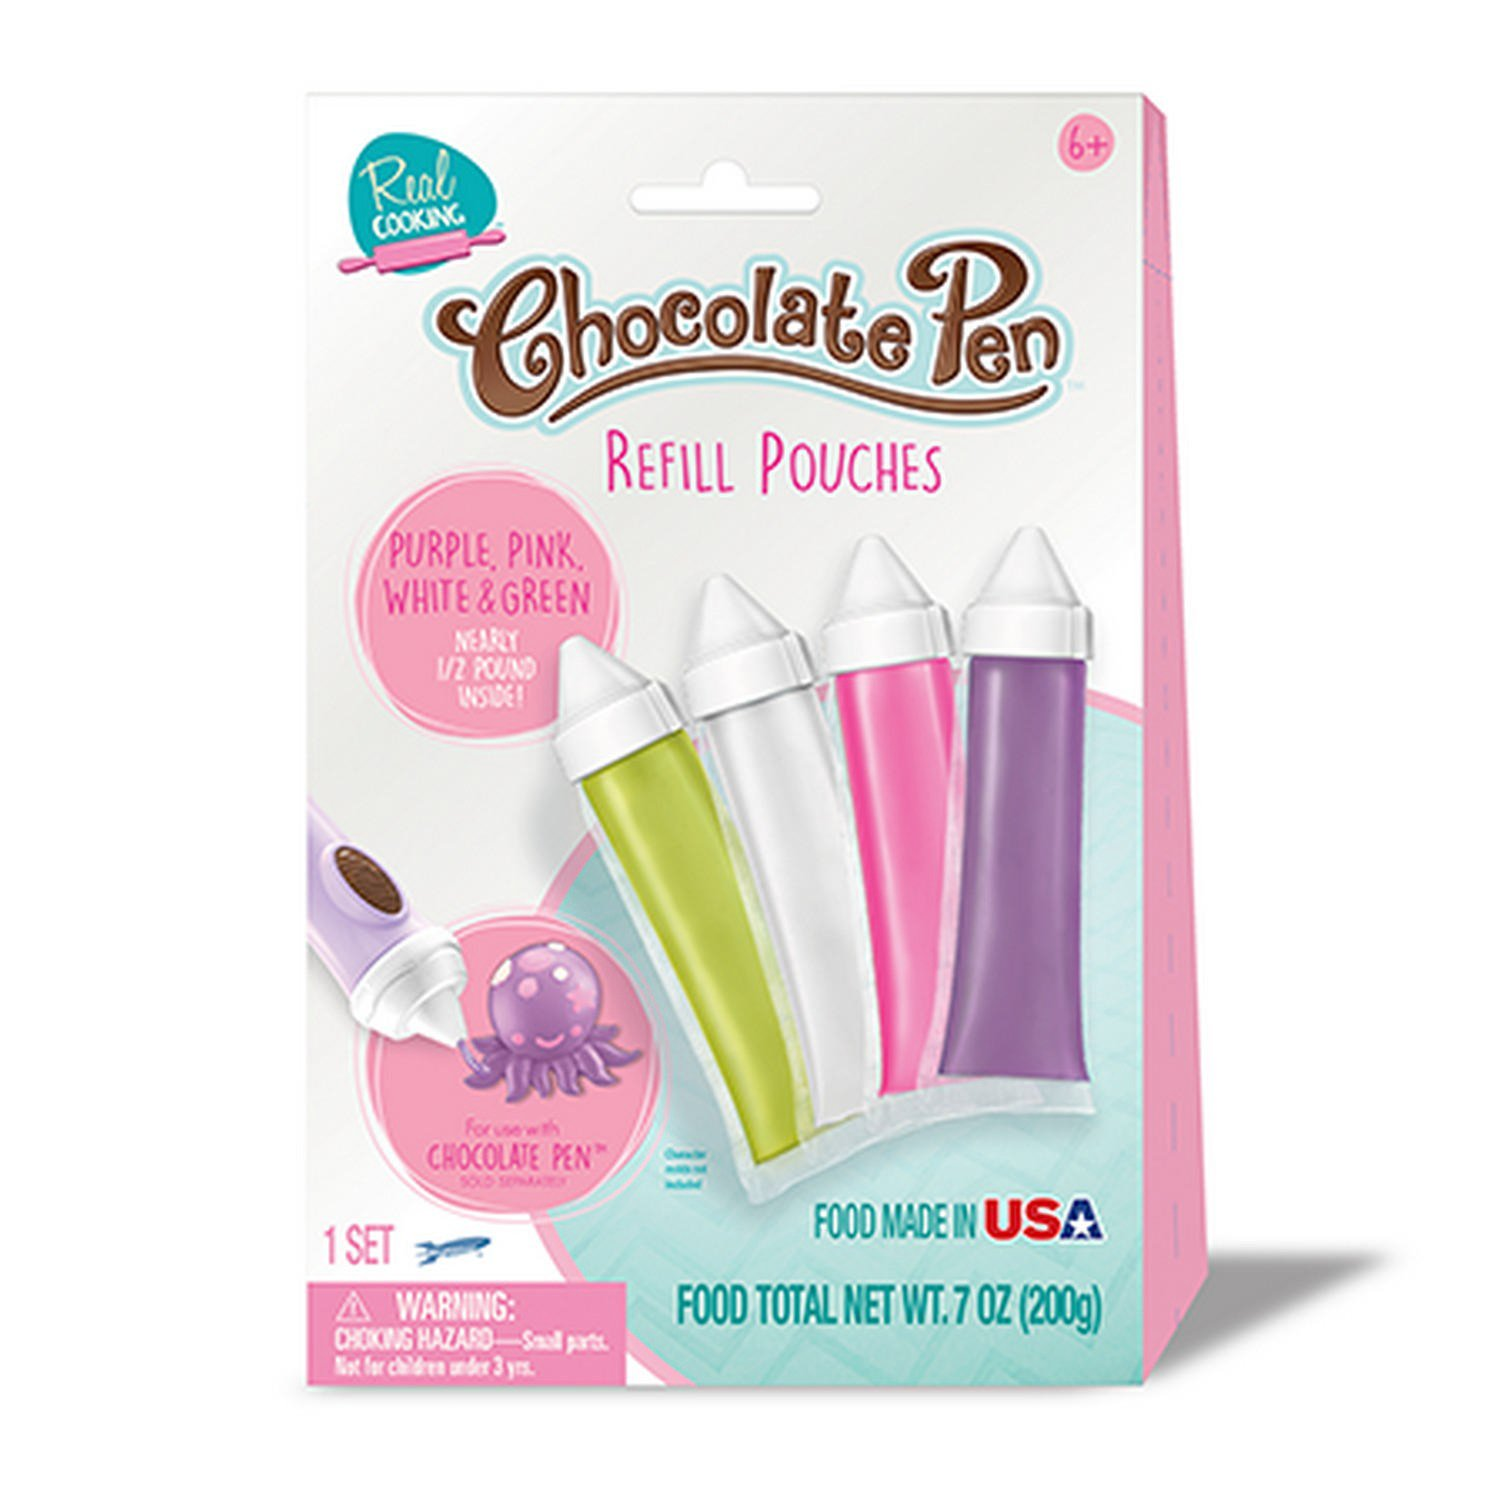 Chocolate Pen Refill Pouches -- Purple, Pink, White & Green Sky Rocket Toys